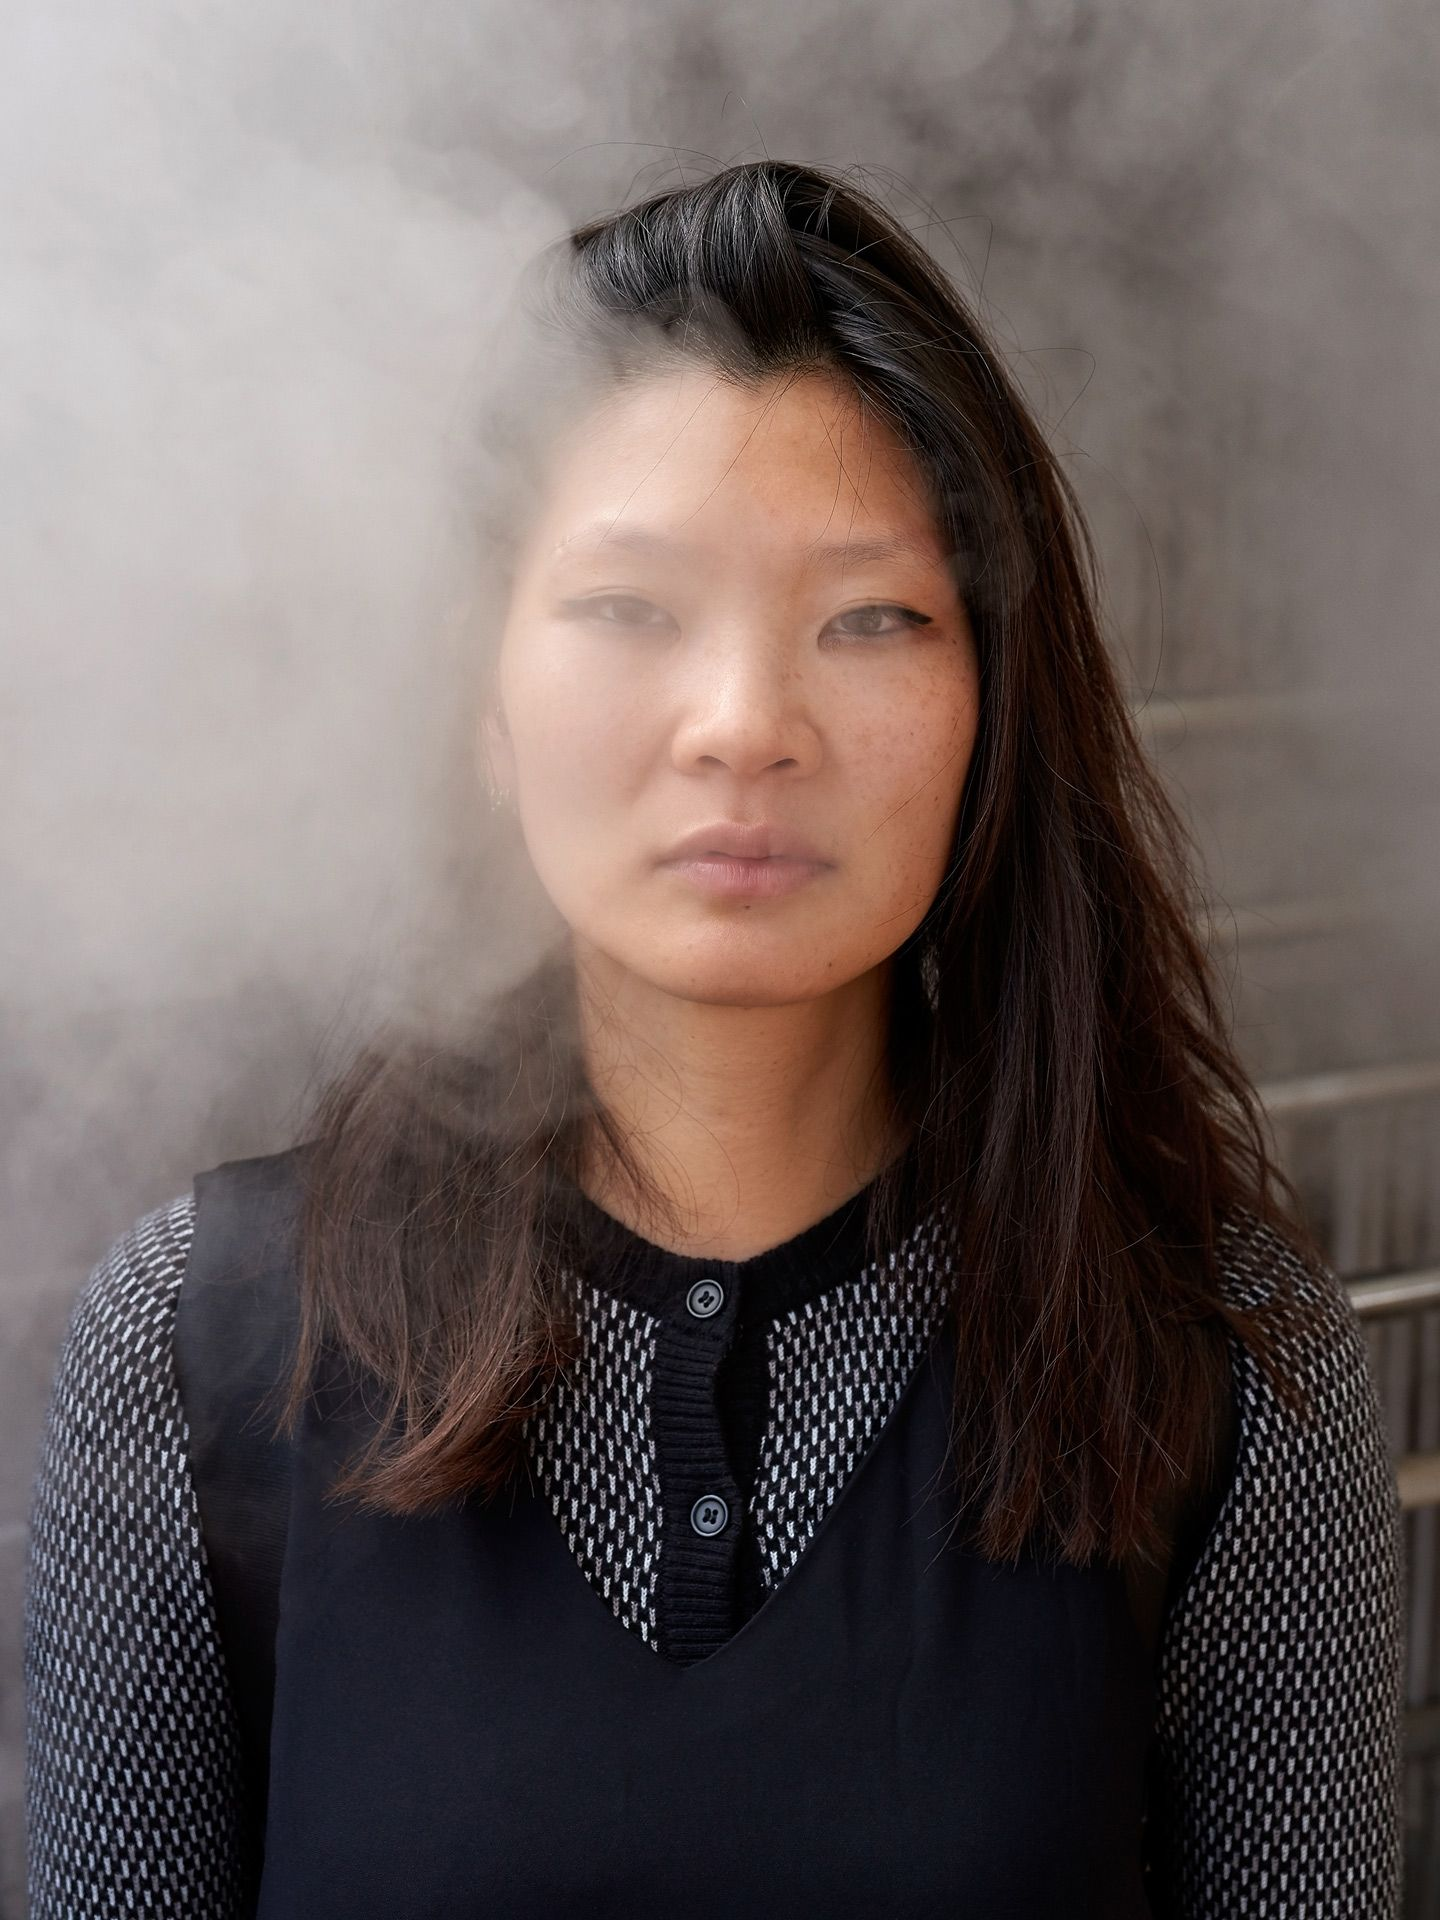 portrait of asian girl Shammy light steam around face looking at camera by Guillaume Simoneau